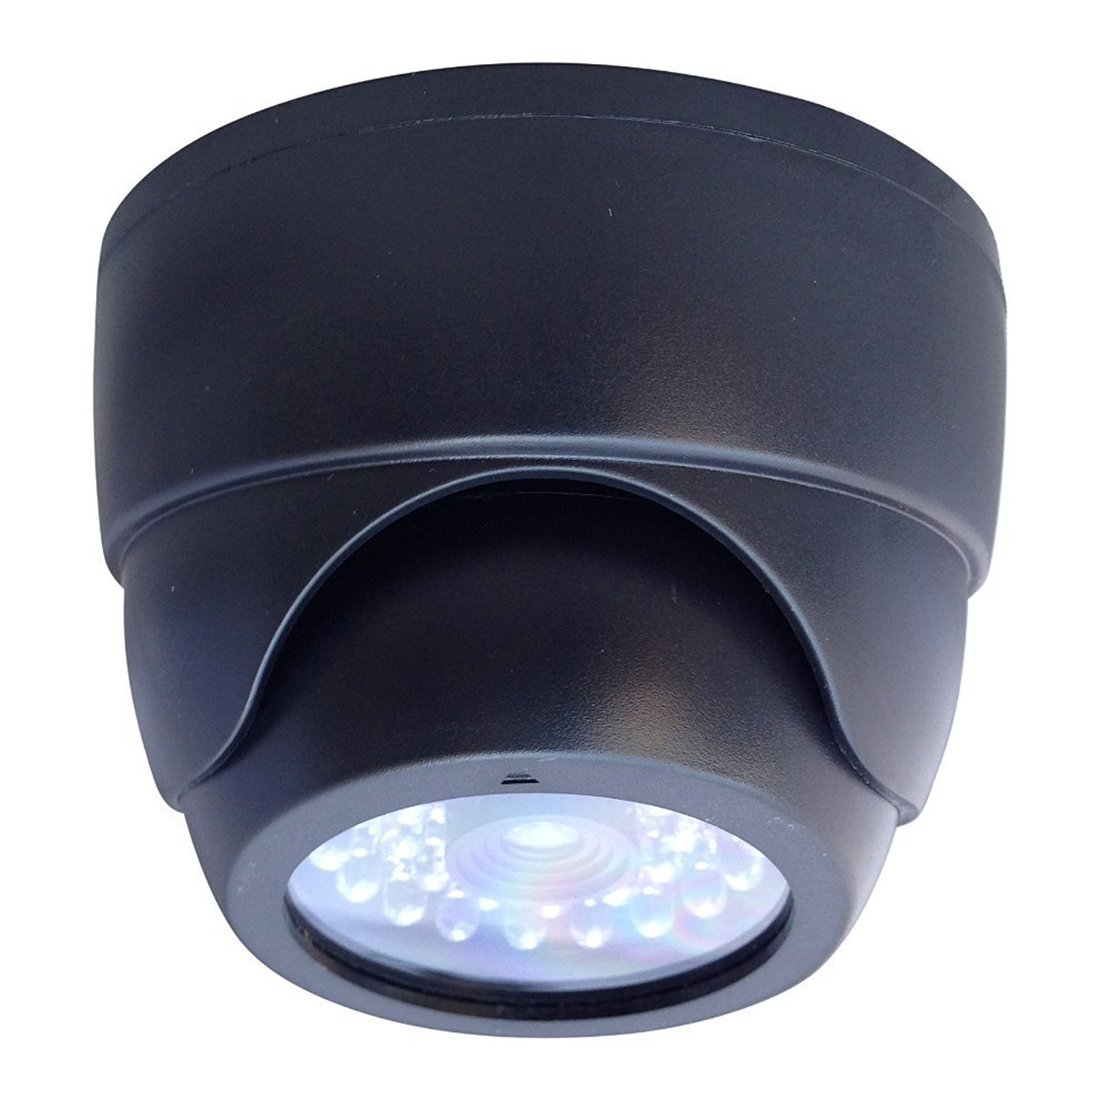 Wholesale 4 PCS Indoor Outdoor CCTV Fake Dummy Dome Security Camera Home Surveillance Camera with 30 Red Illuminating LED Light white black dummy camera fake dome cctv camera indoor outdoor red led flashing light for home security for christmas